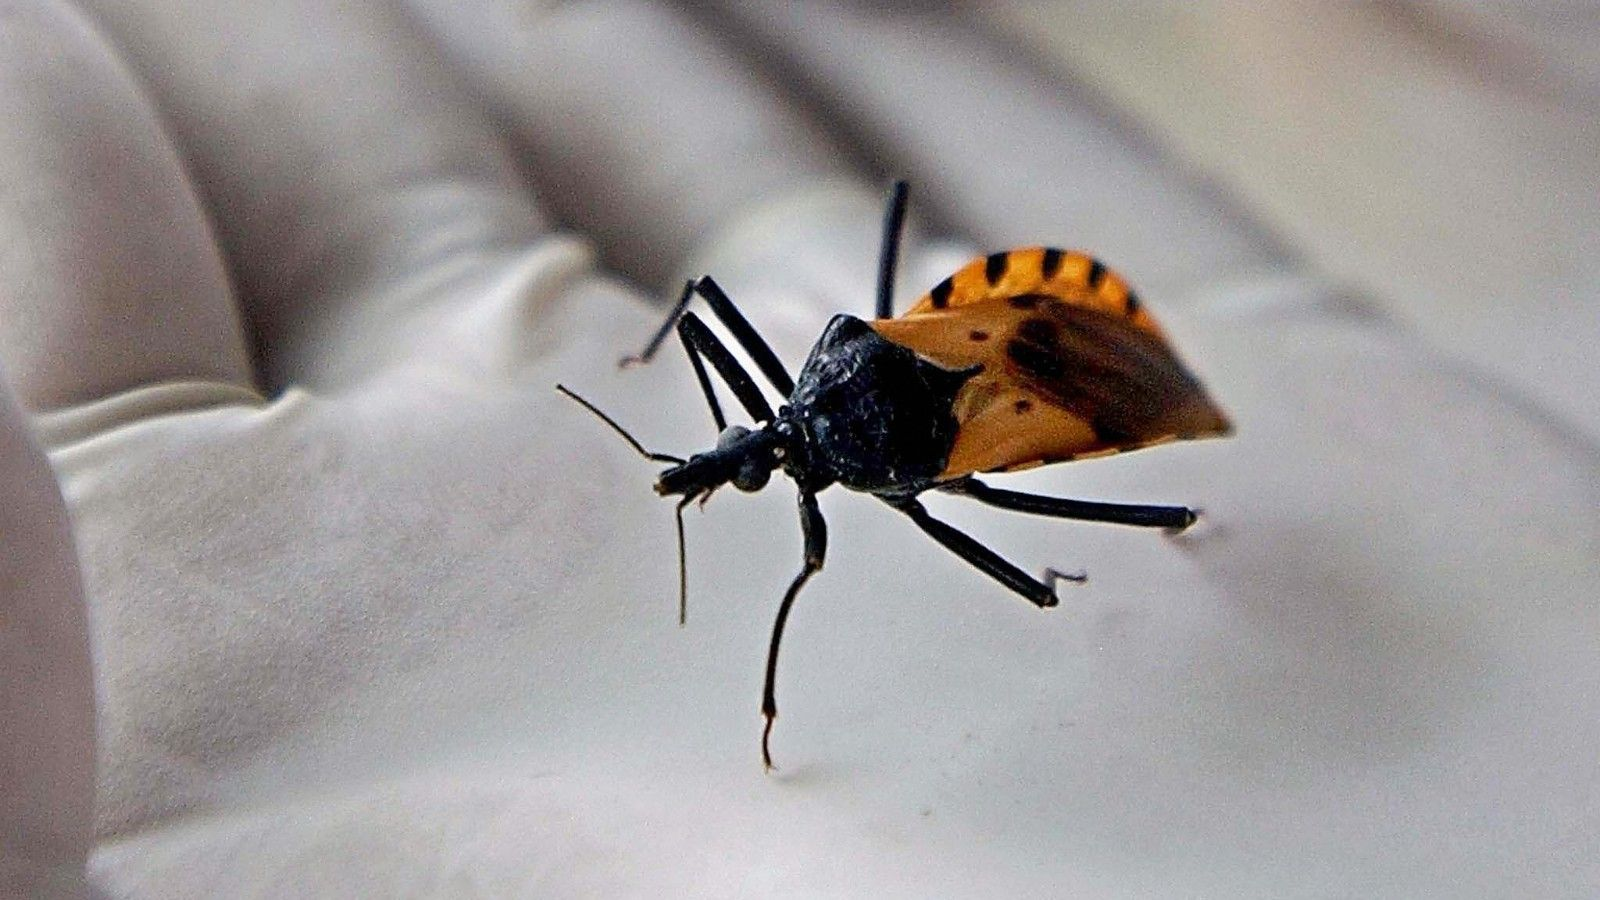 'Kissing bug' disease more deadly than thought